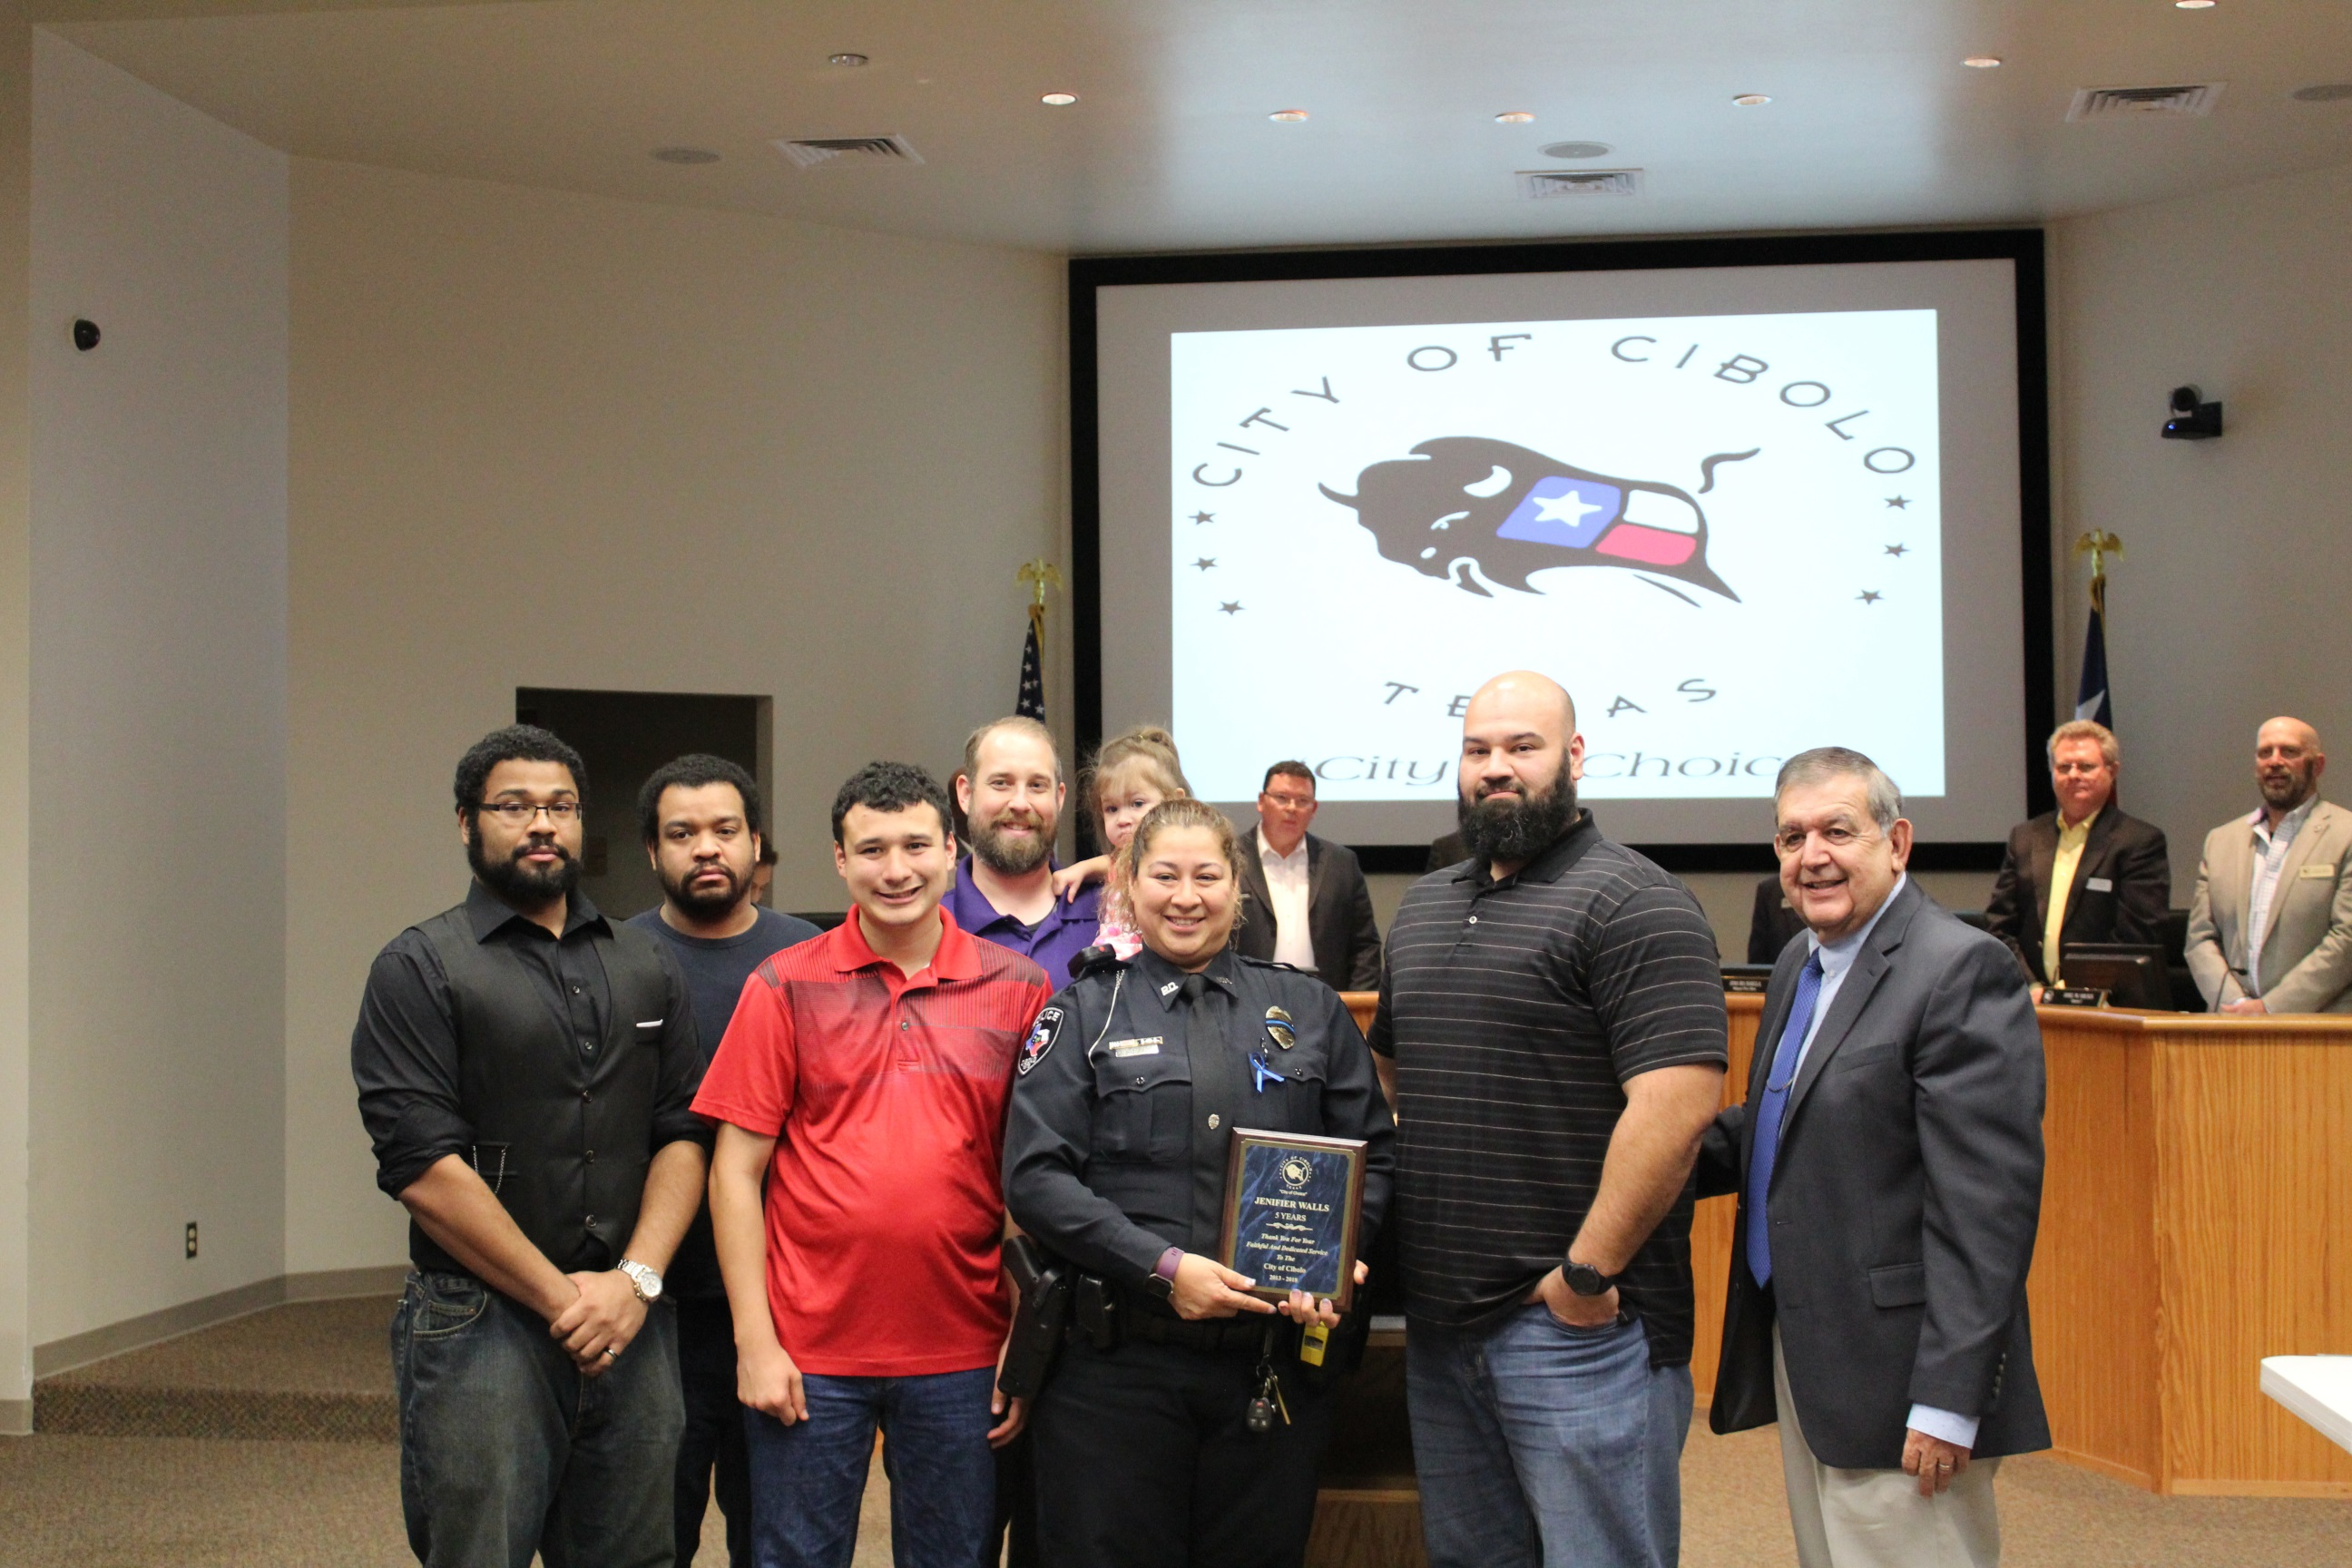 Mr. Herrera Presentation of 5 Years Service Award to Officer Jennifer Walls. (Picture with Family)